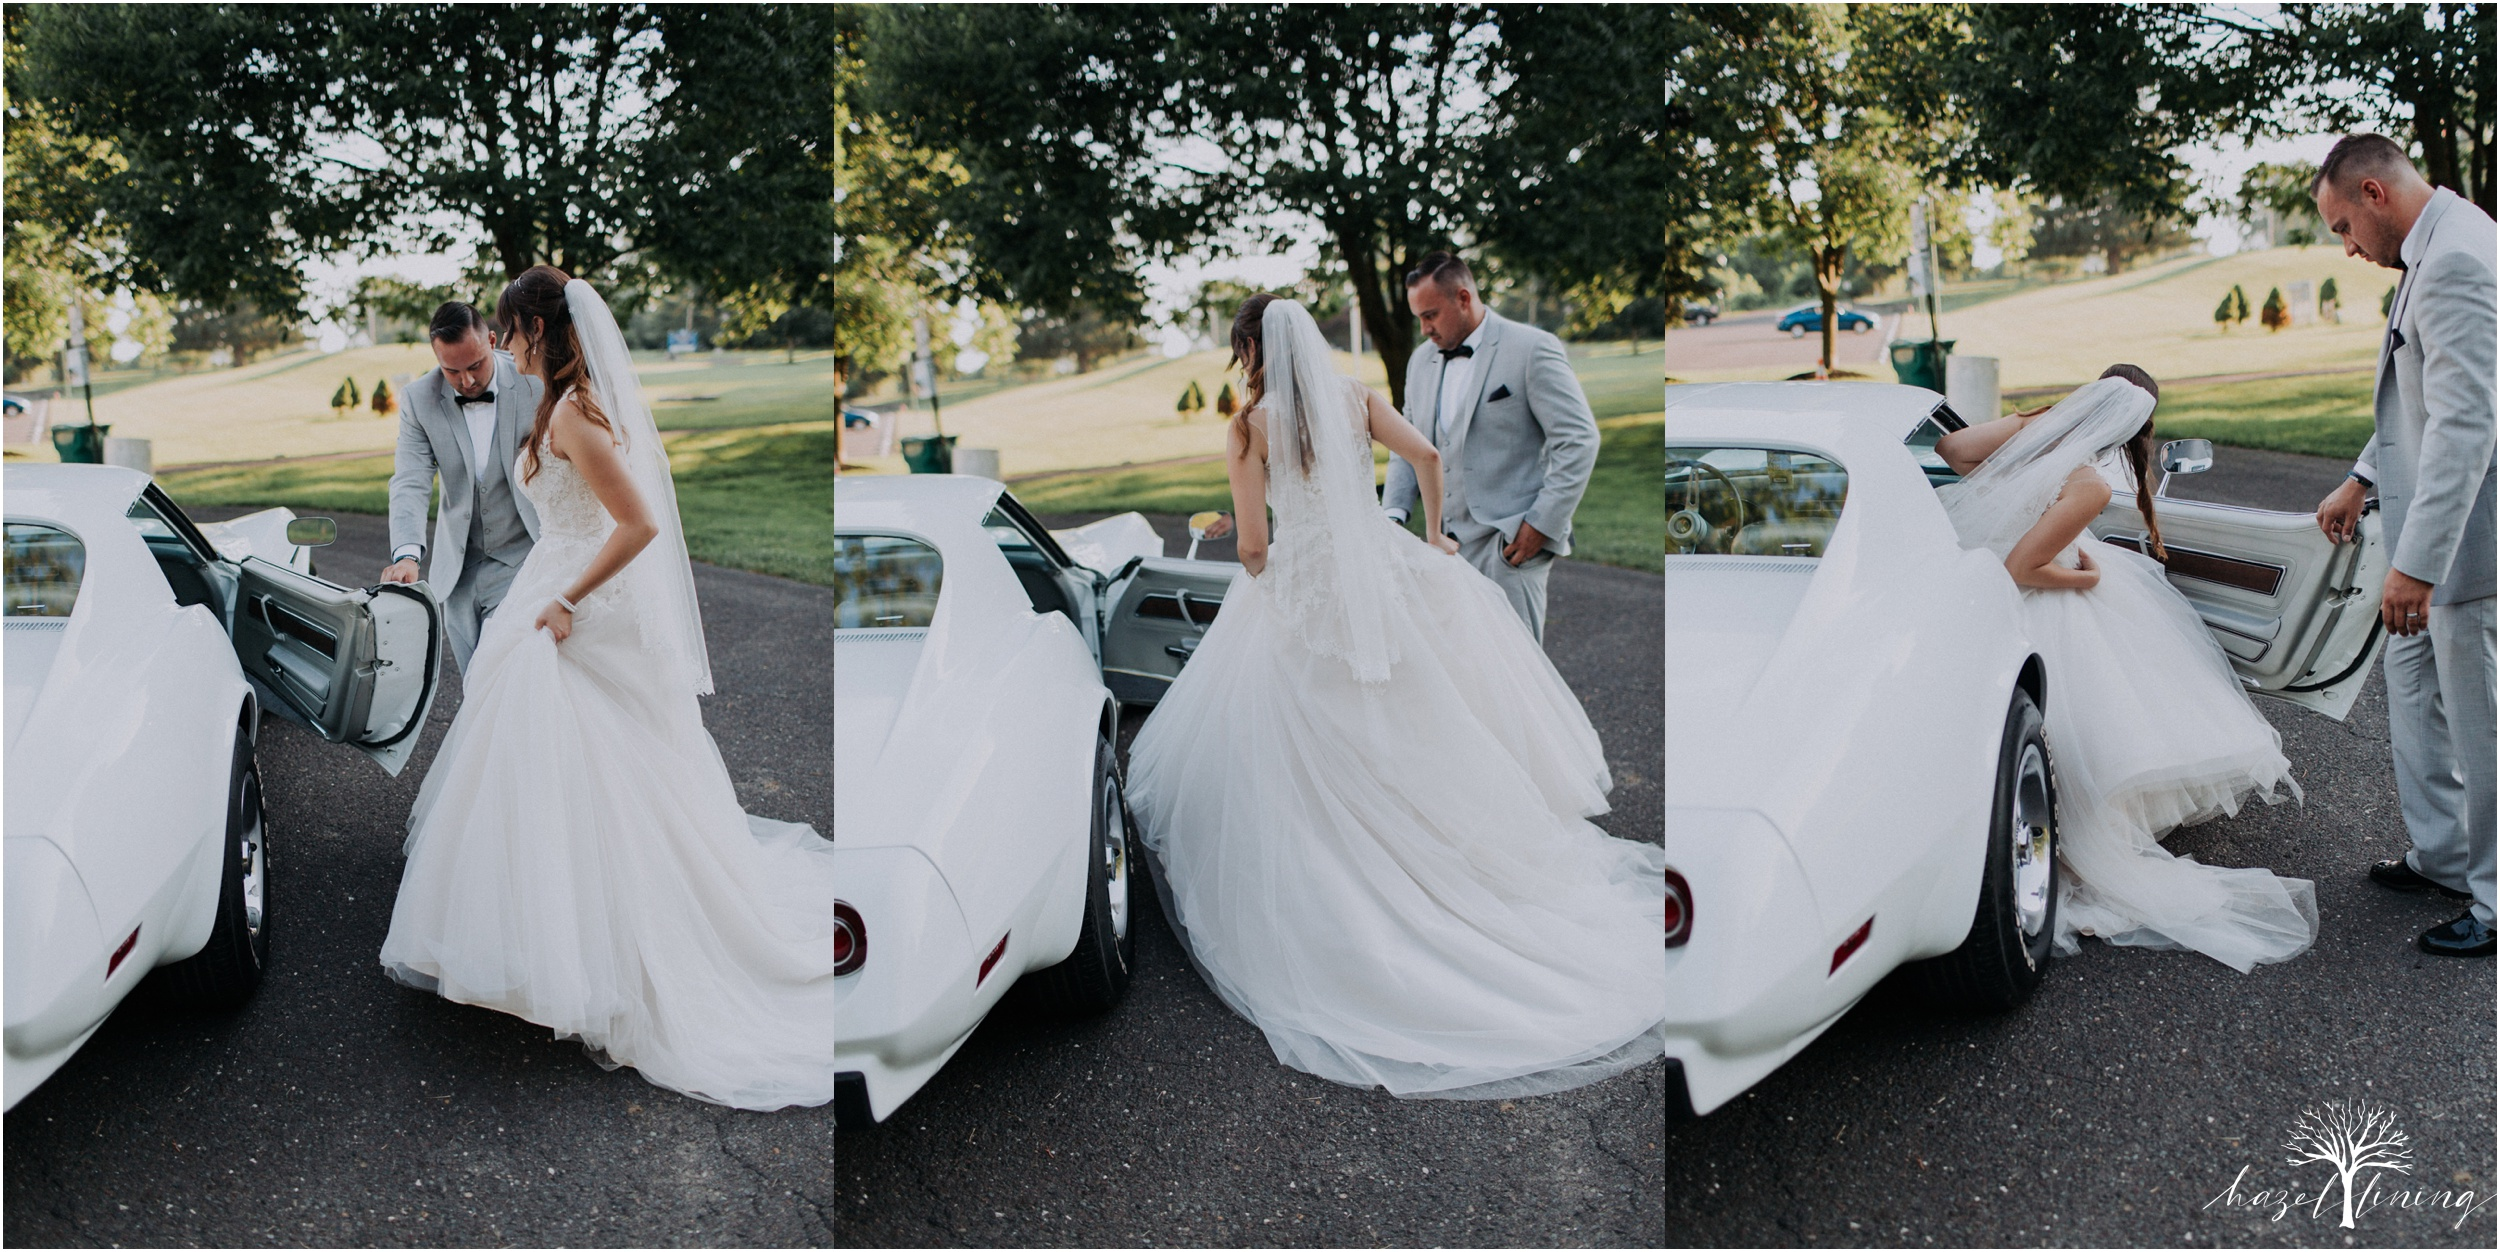 cassie-depinto-tyler-bodder-playwicki-farm-buck-hotel-featserville-trevose-pennsylvania-summer-outdoor-wedding-hazel-lining-travel-wedding-elopement-photography_0269.jpg